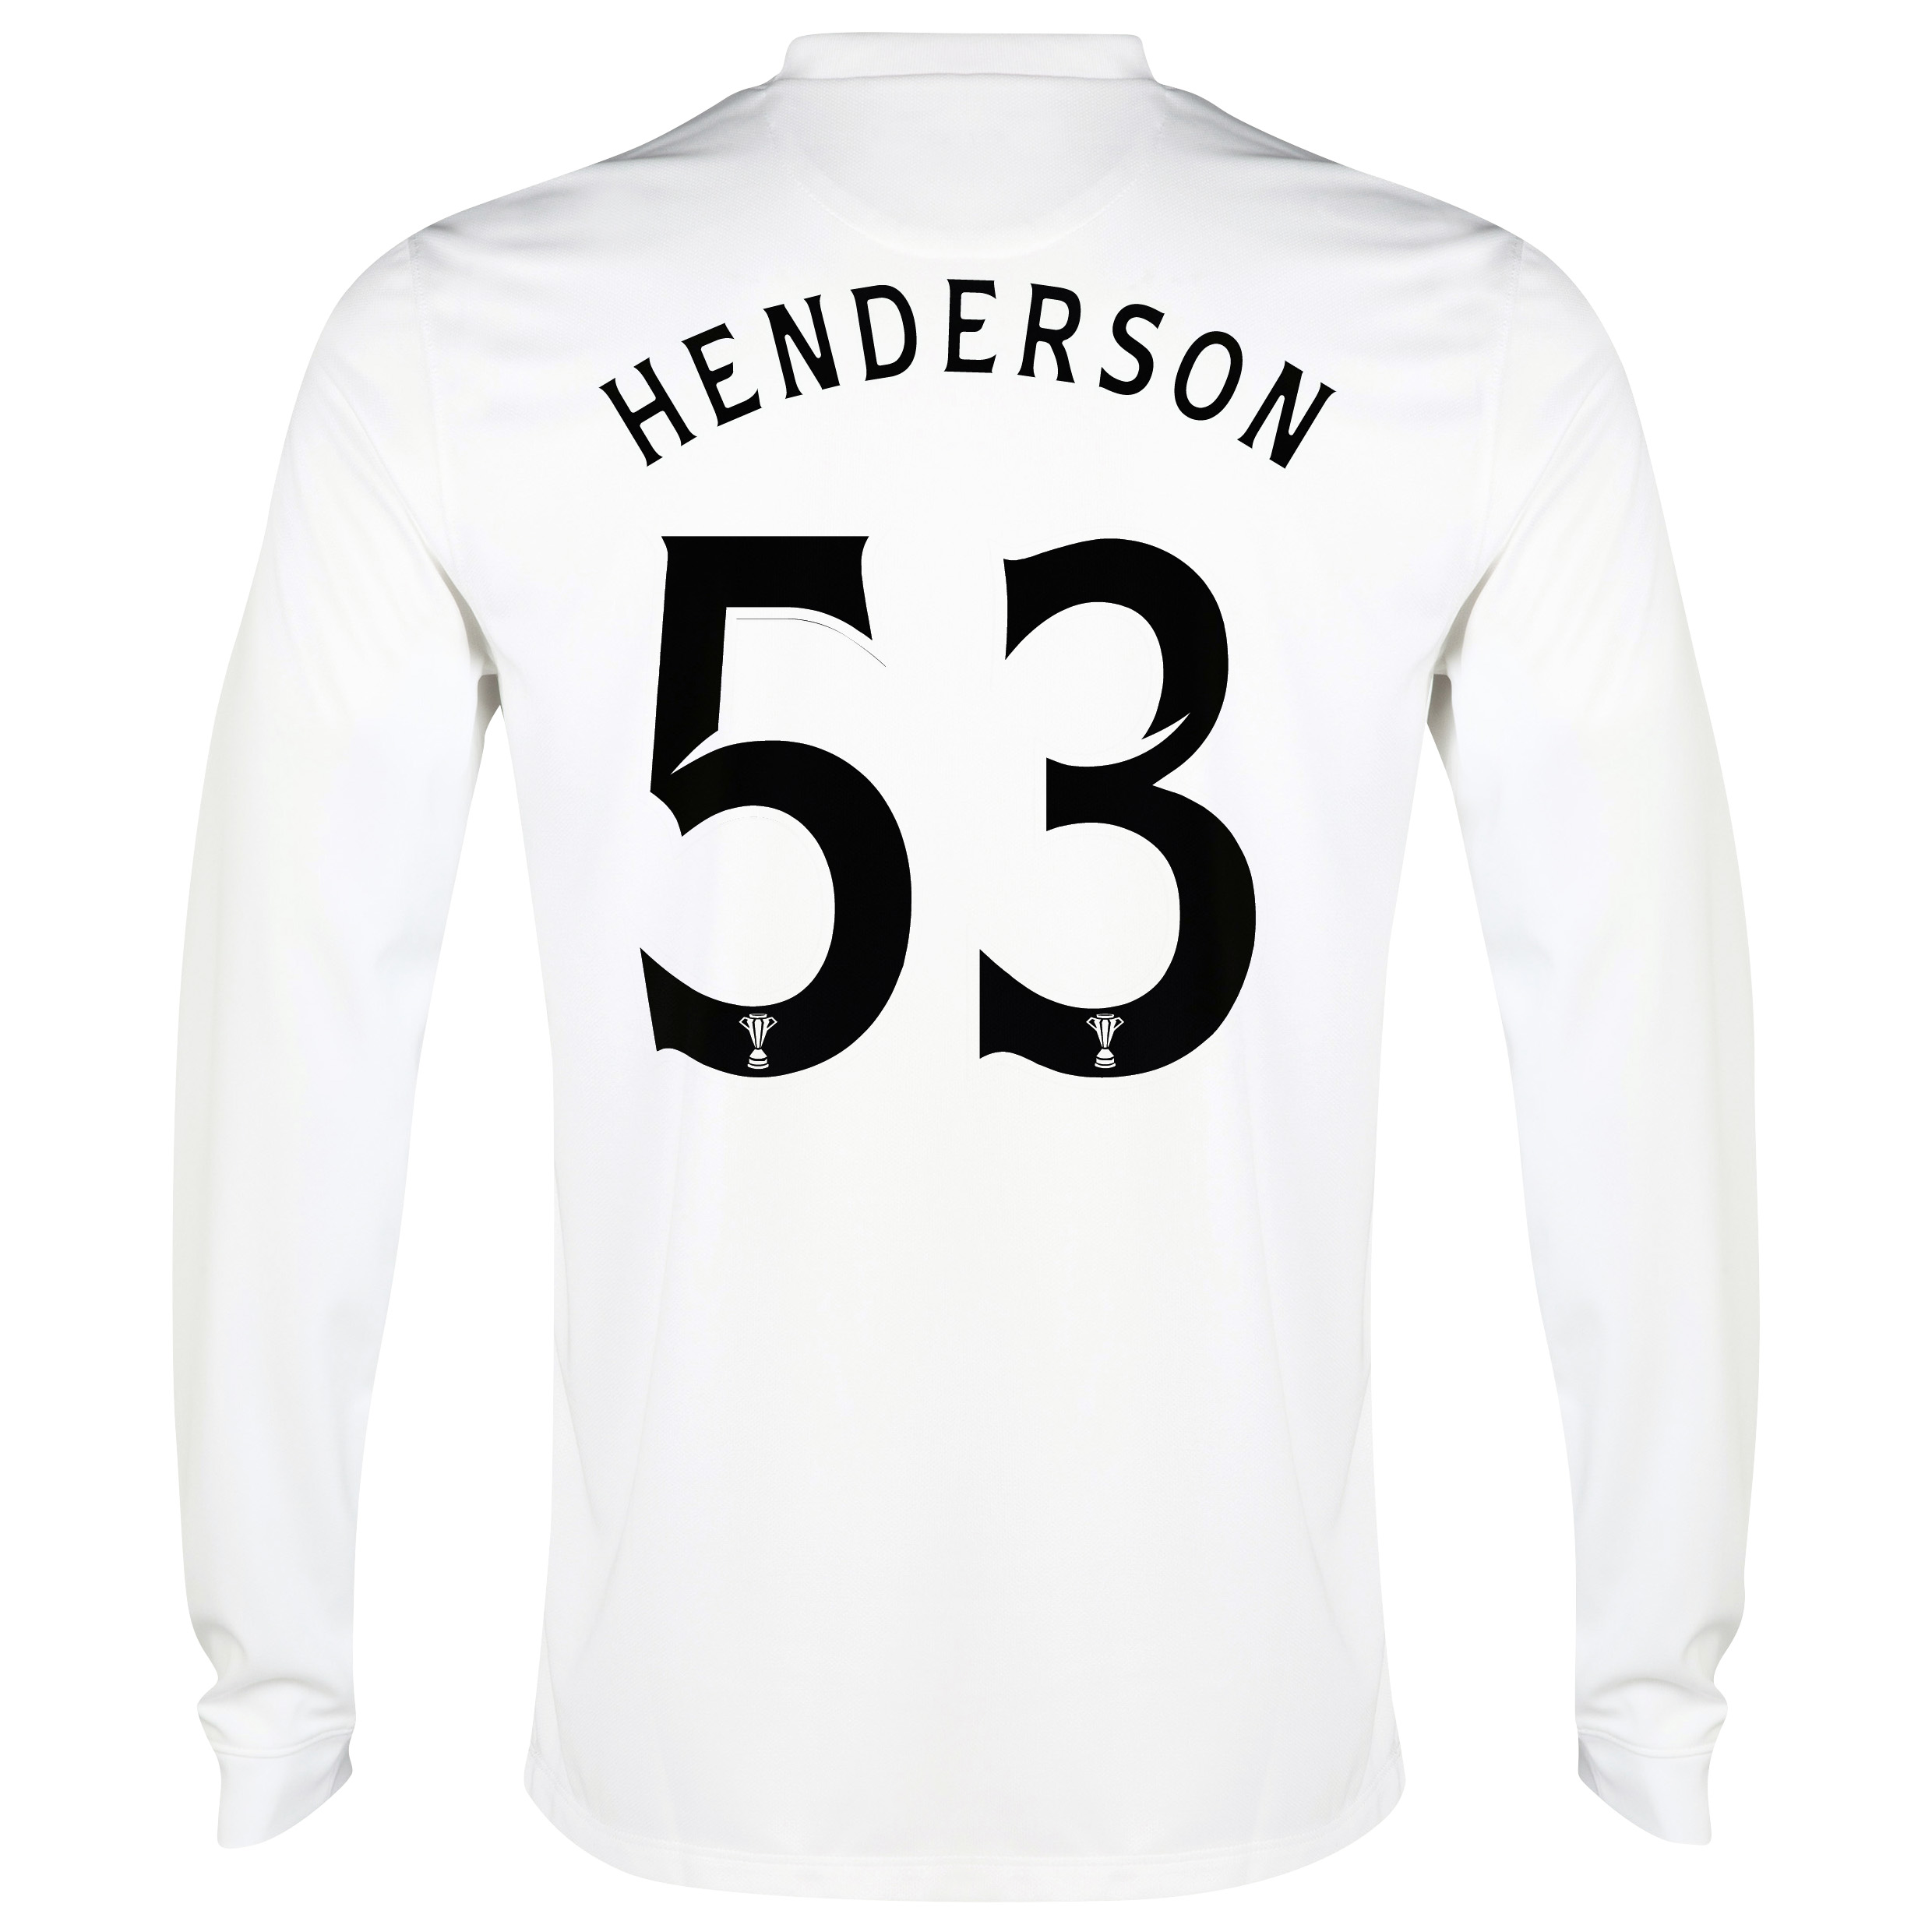 Celtic 3rd Shirt 2014/15 - Long Sleeved - With Sponsor White with Henderson 53 printing